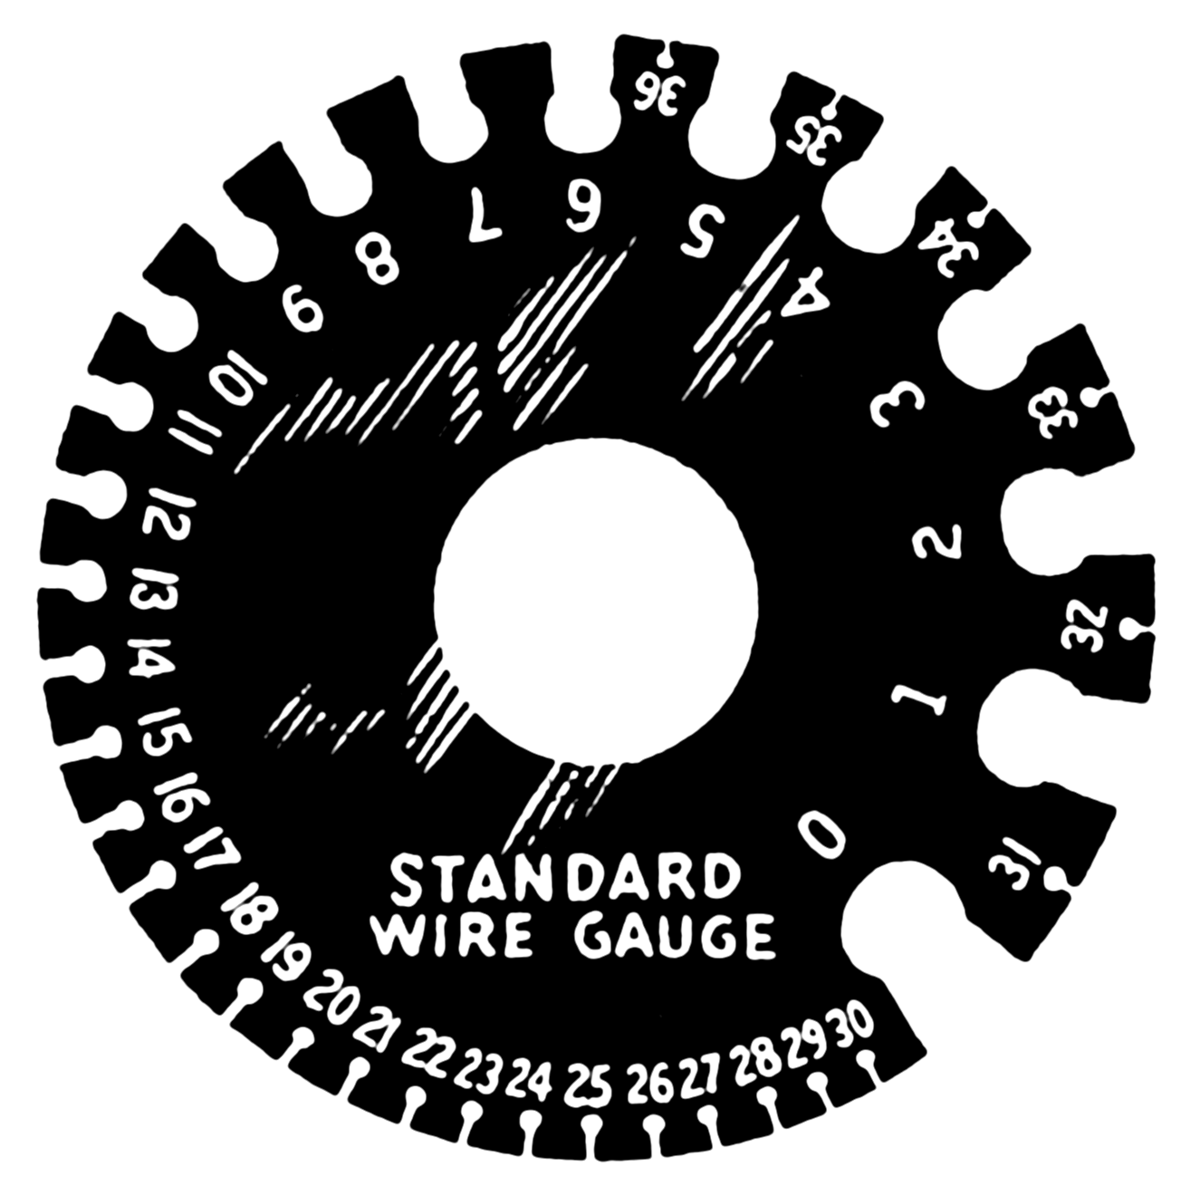 Guage size fashionellaconstance wire gauge wikipedia guage size greentooth Image collections